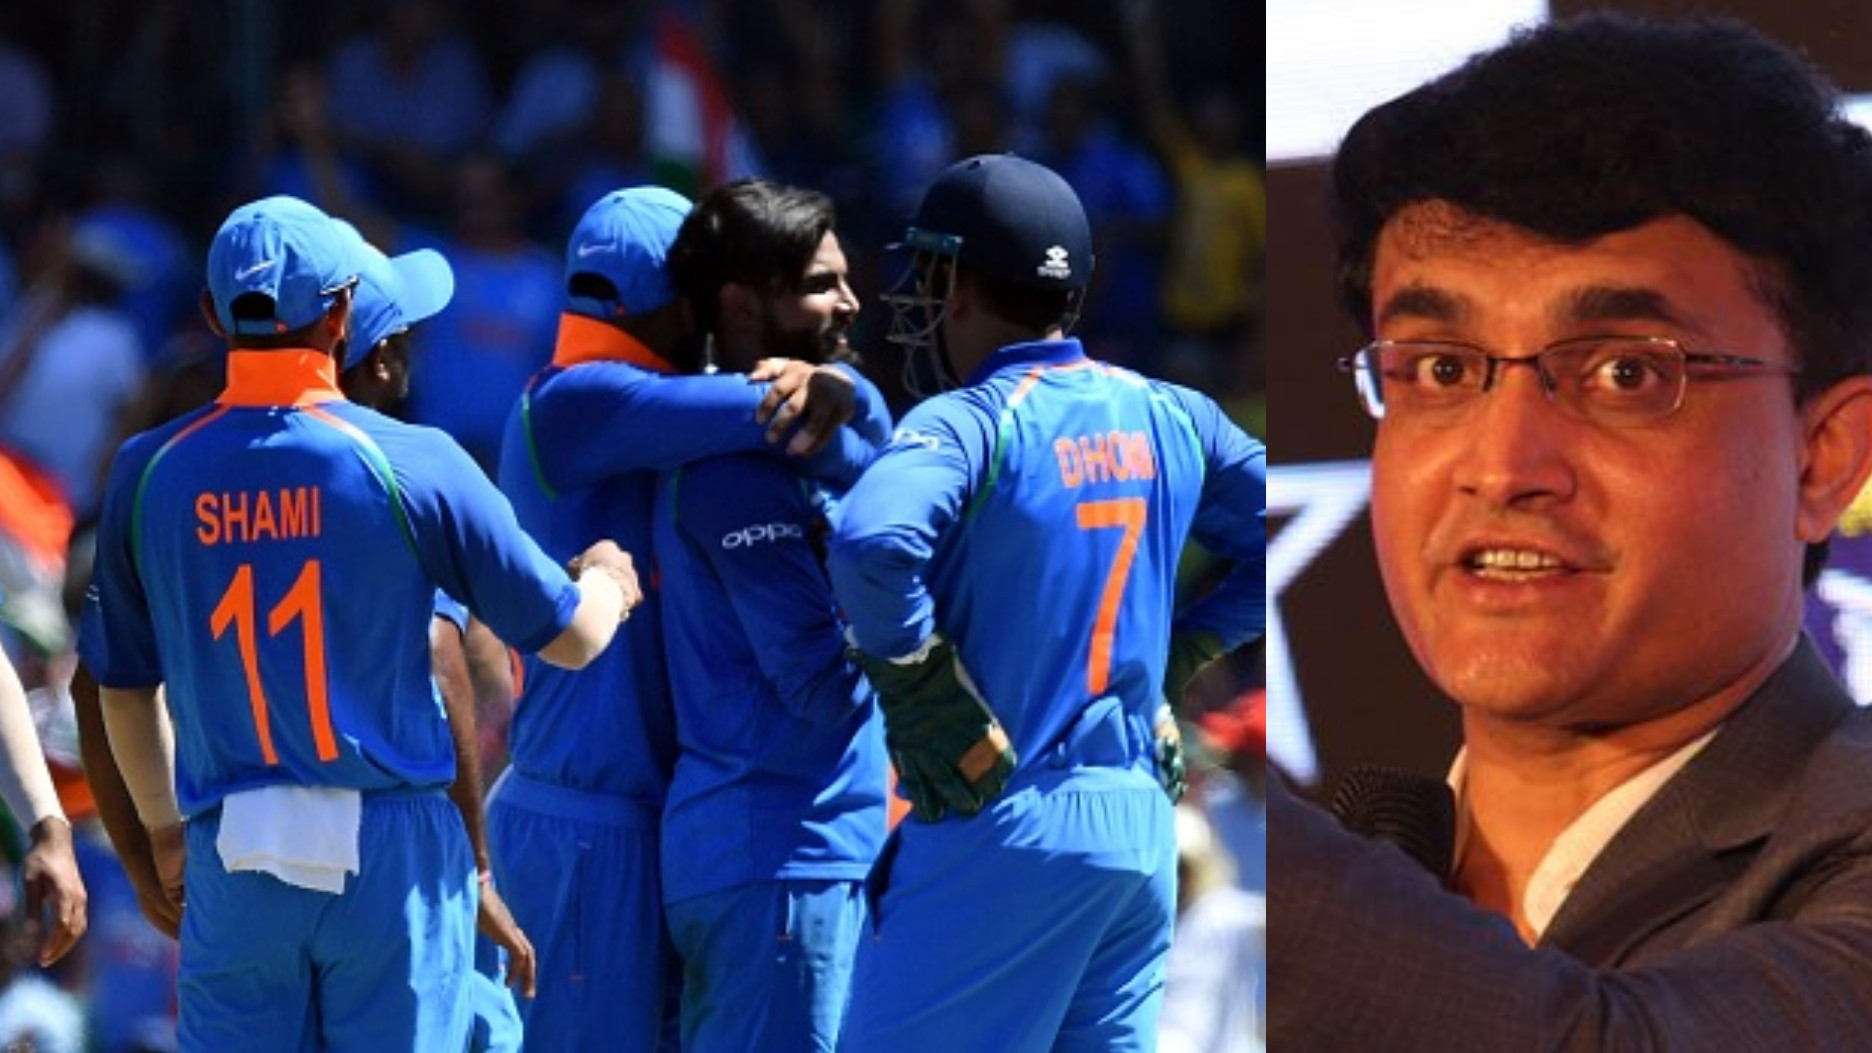 NZ v IND 2019: Sourav Ganguly believes Team India may have the best World Cup ever